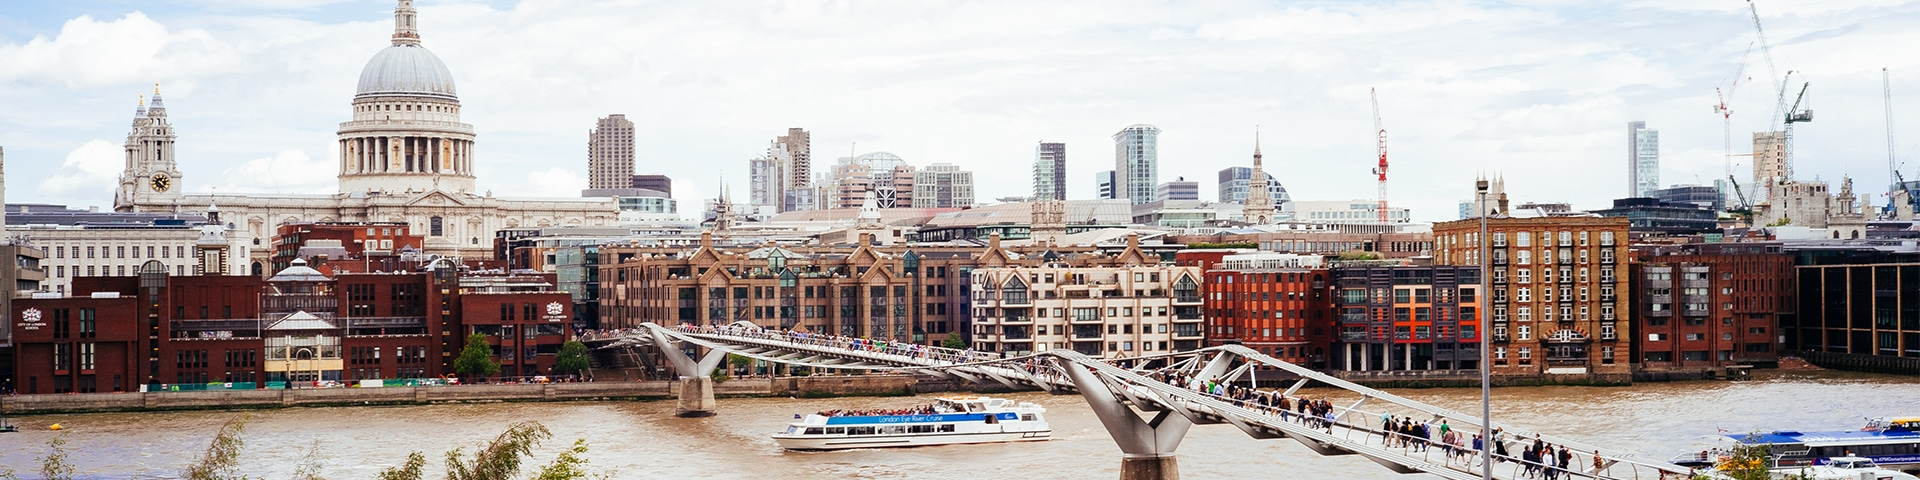 King's Cross to the City of London is one of the best city-walks in London, UK